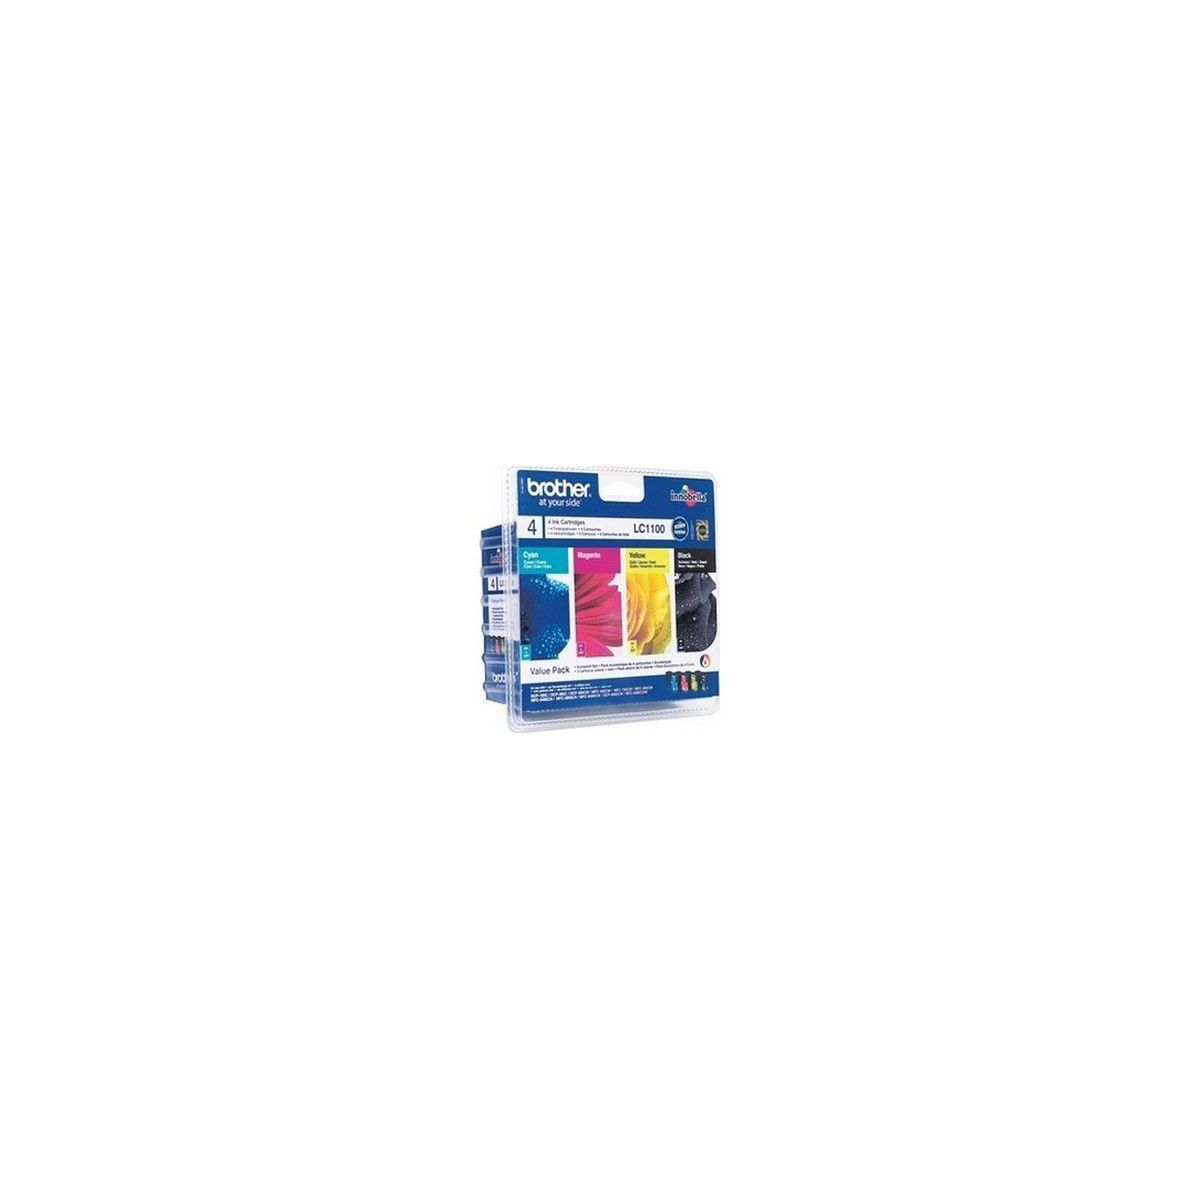 Multipack cartouches d'encre BROTHER LC1100 Noir, Jaune, Cyan, Magenta